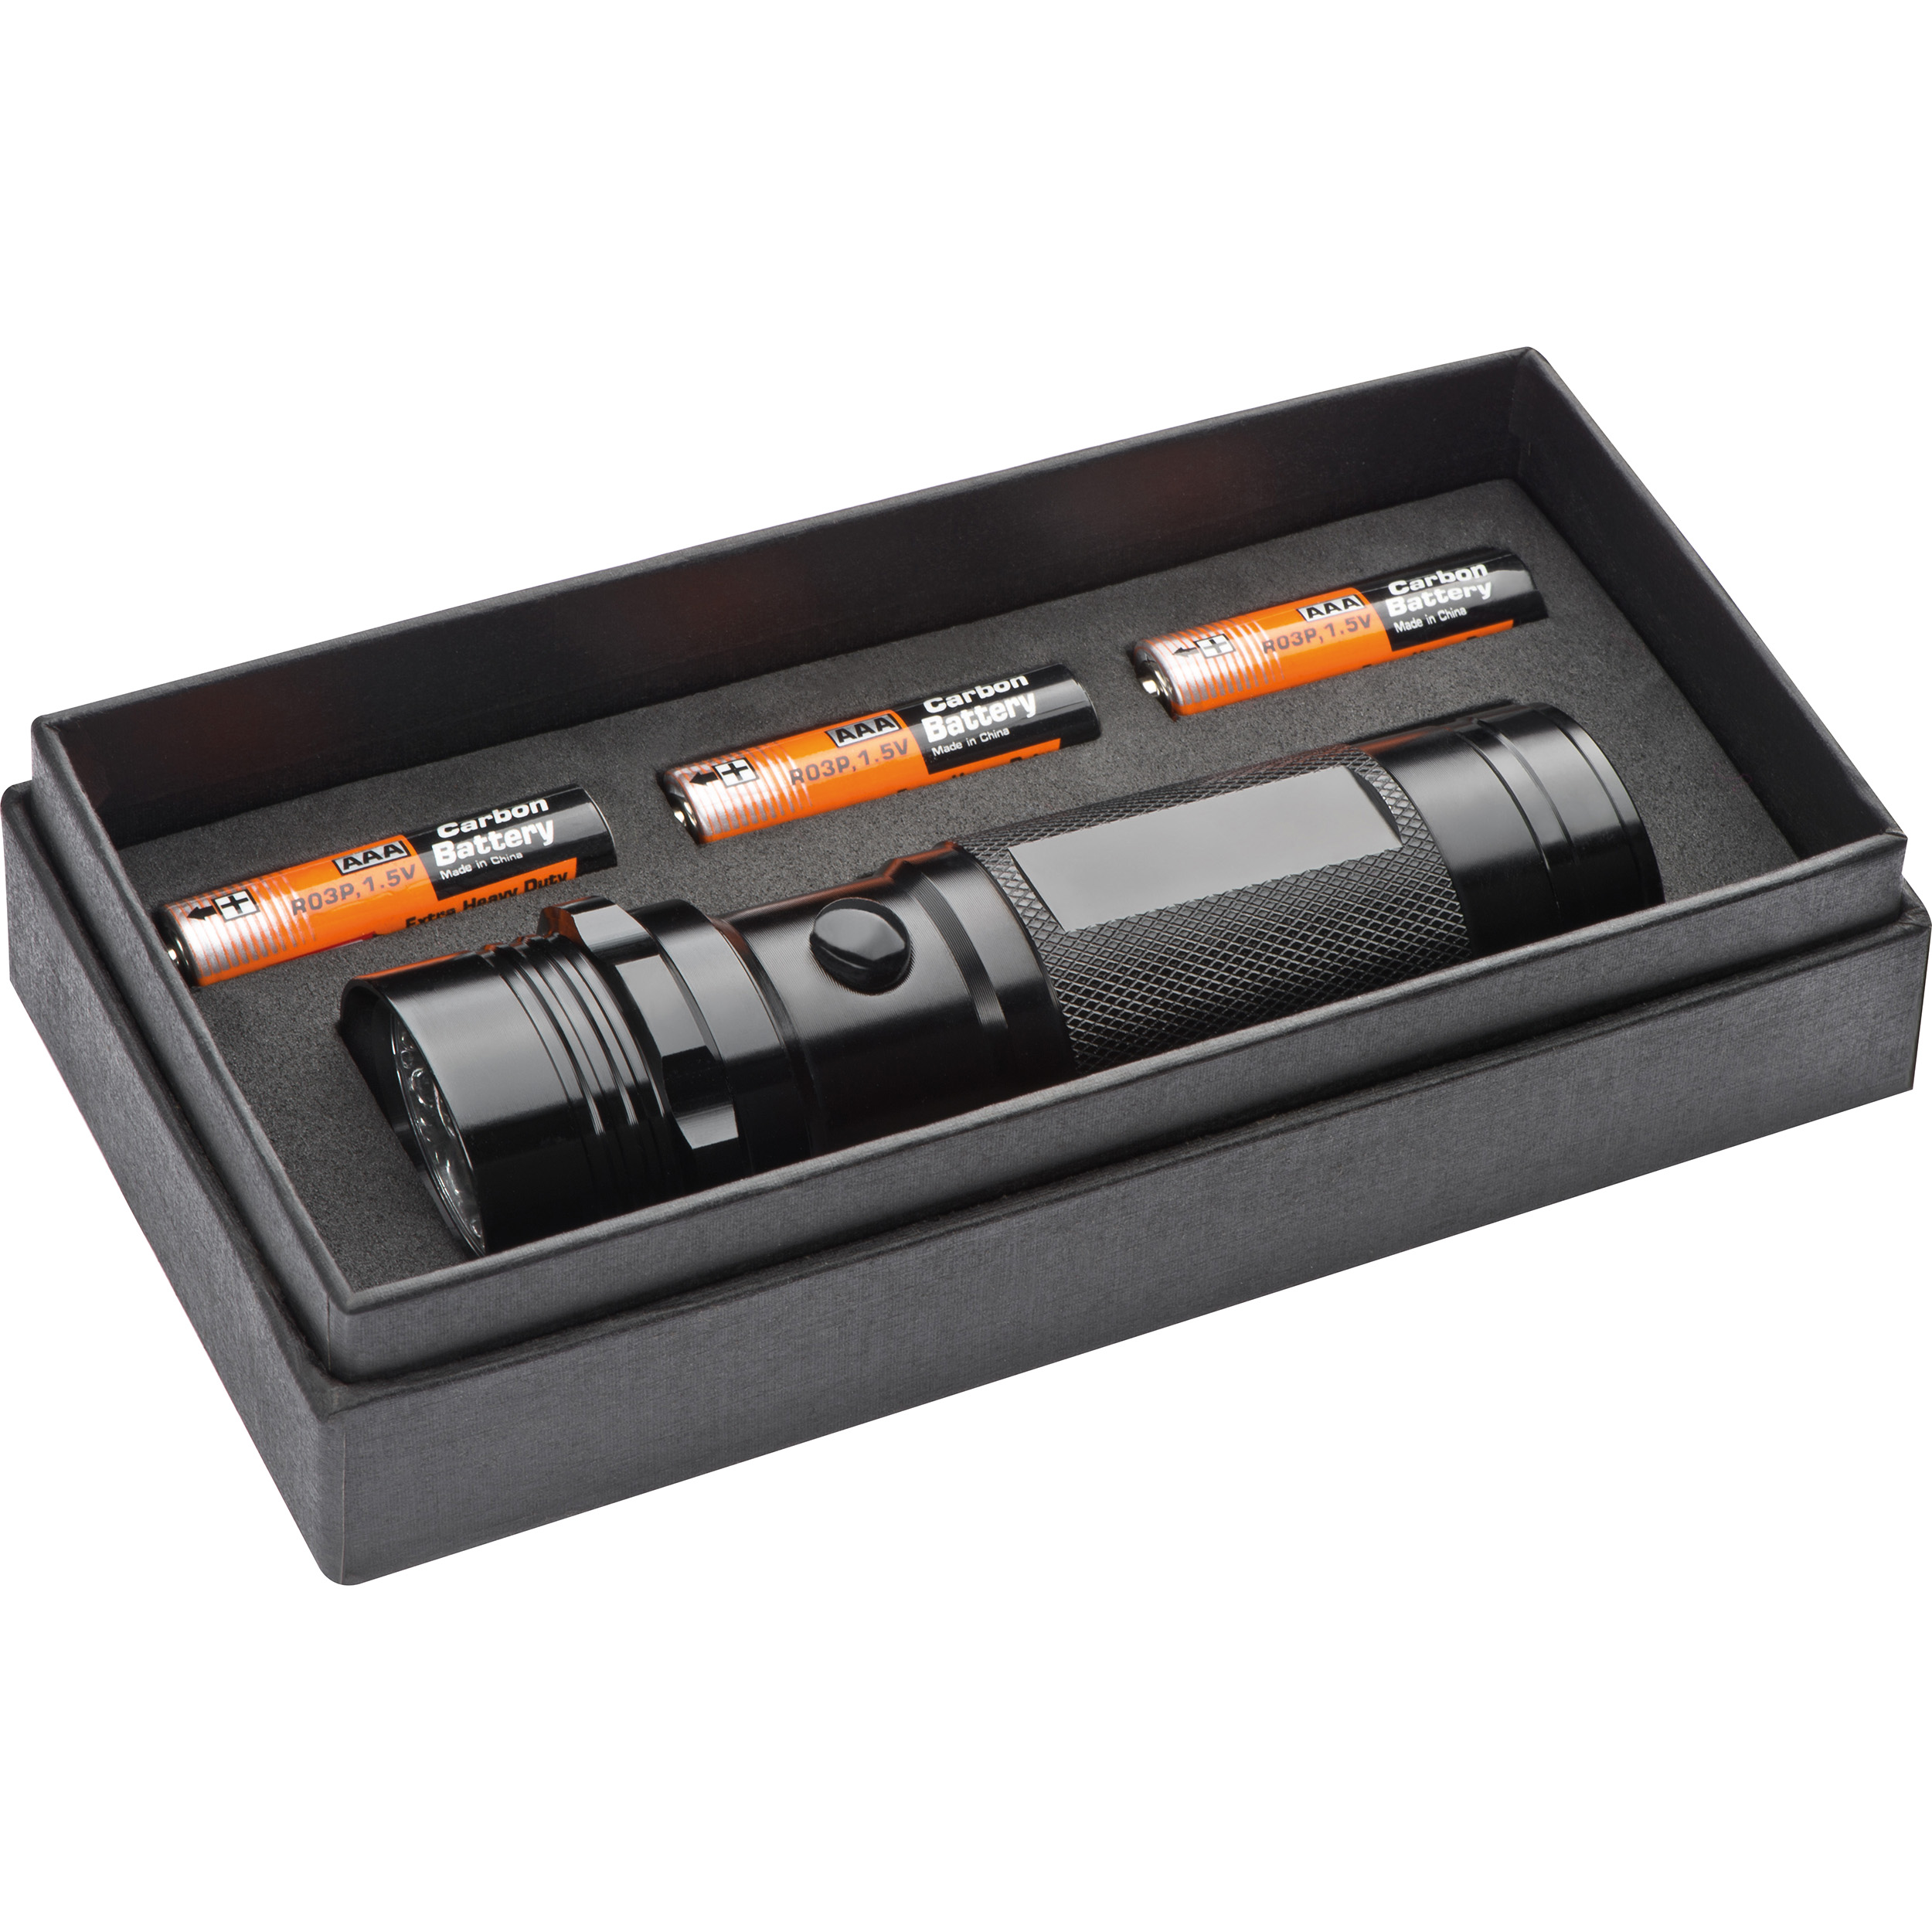 Torch with 14 LEDs in a box